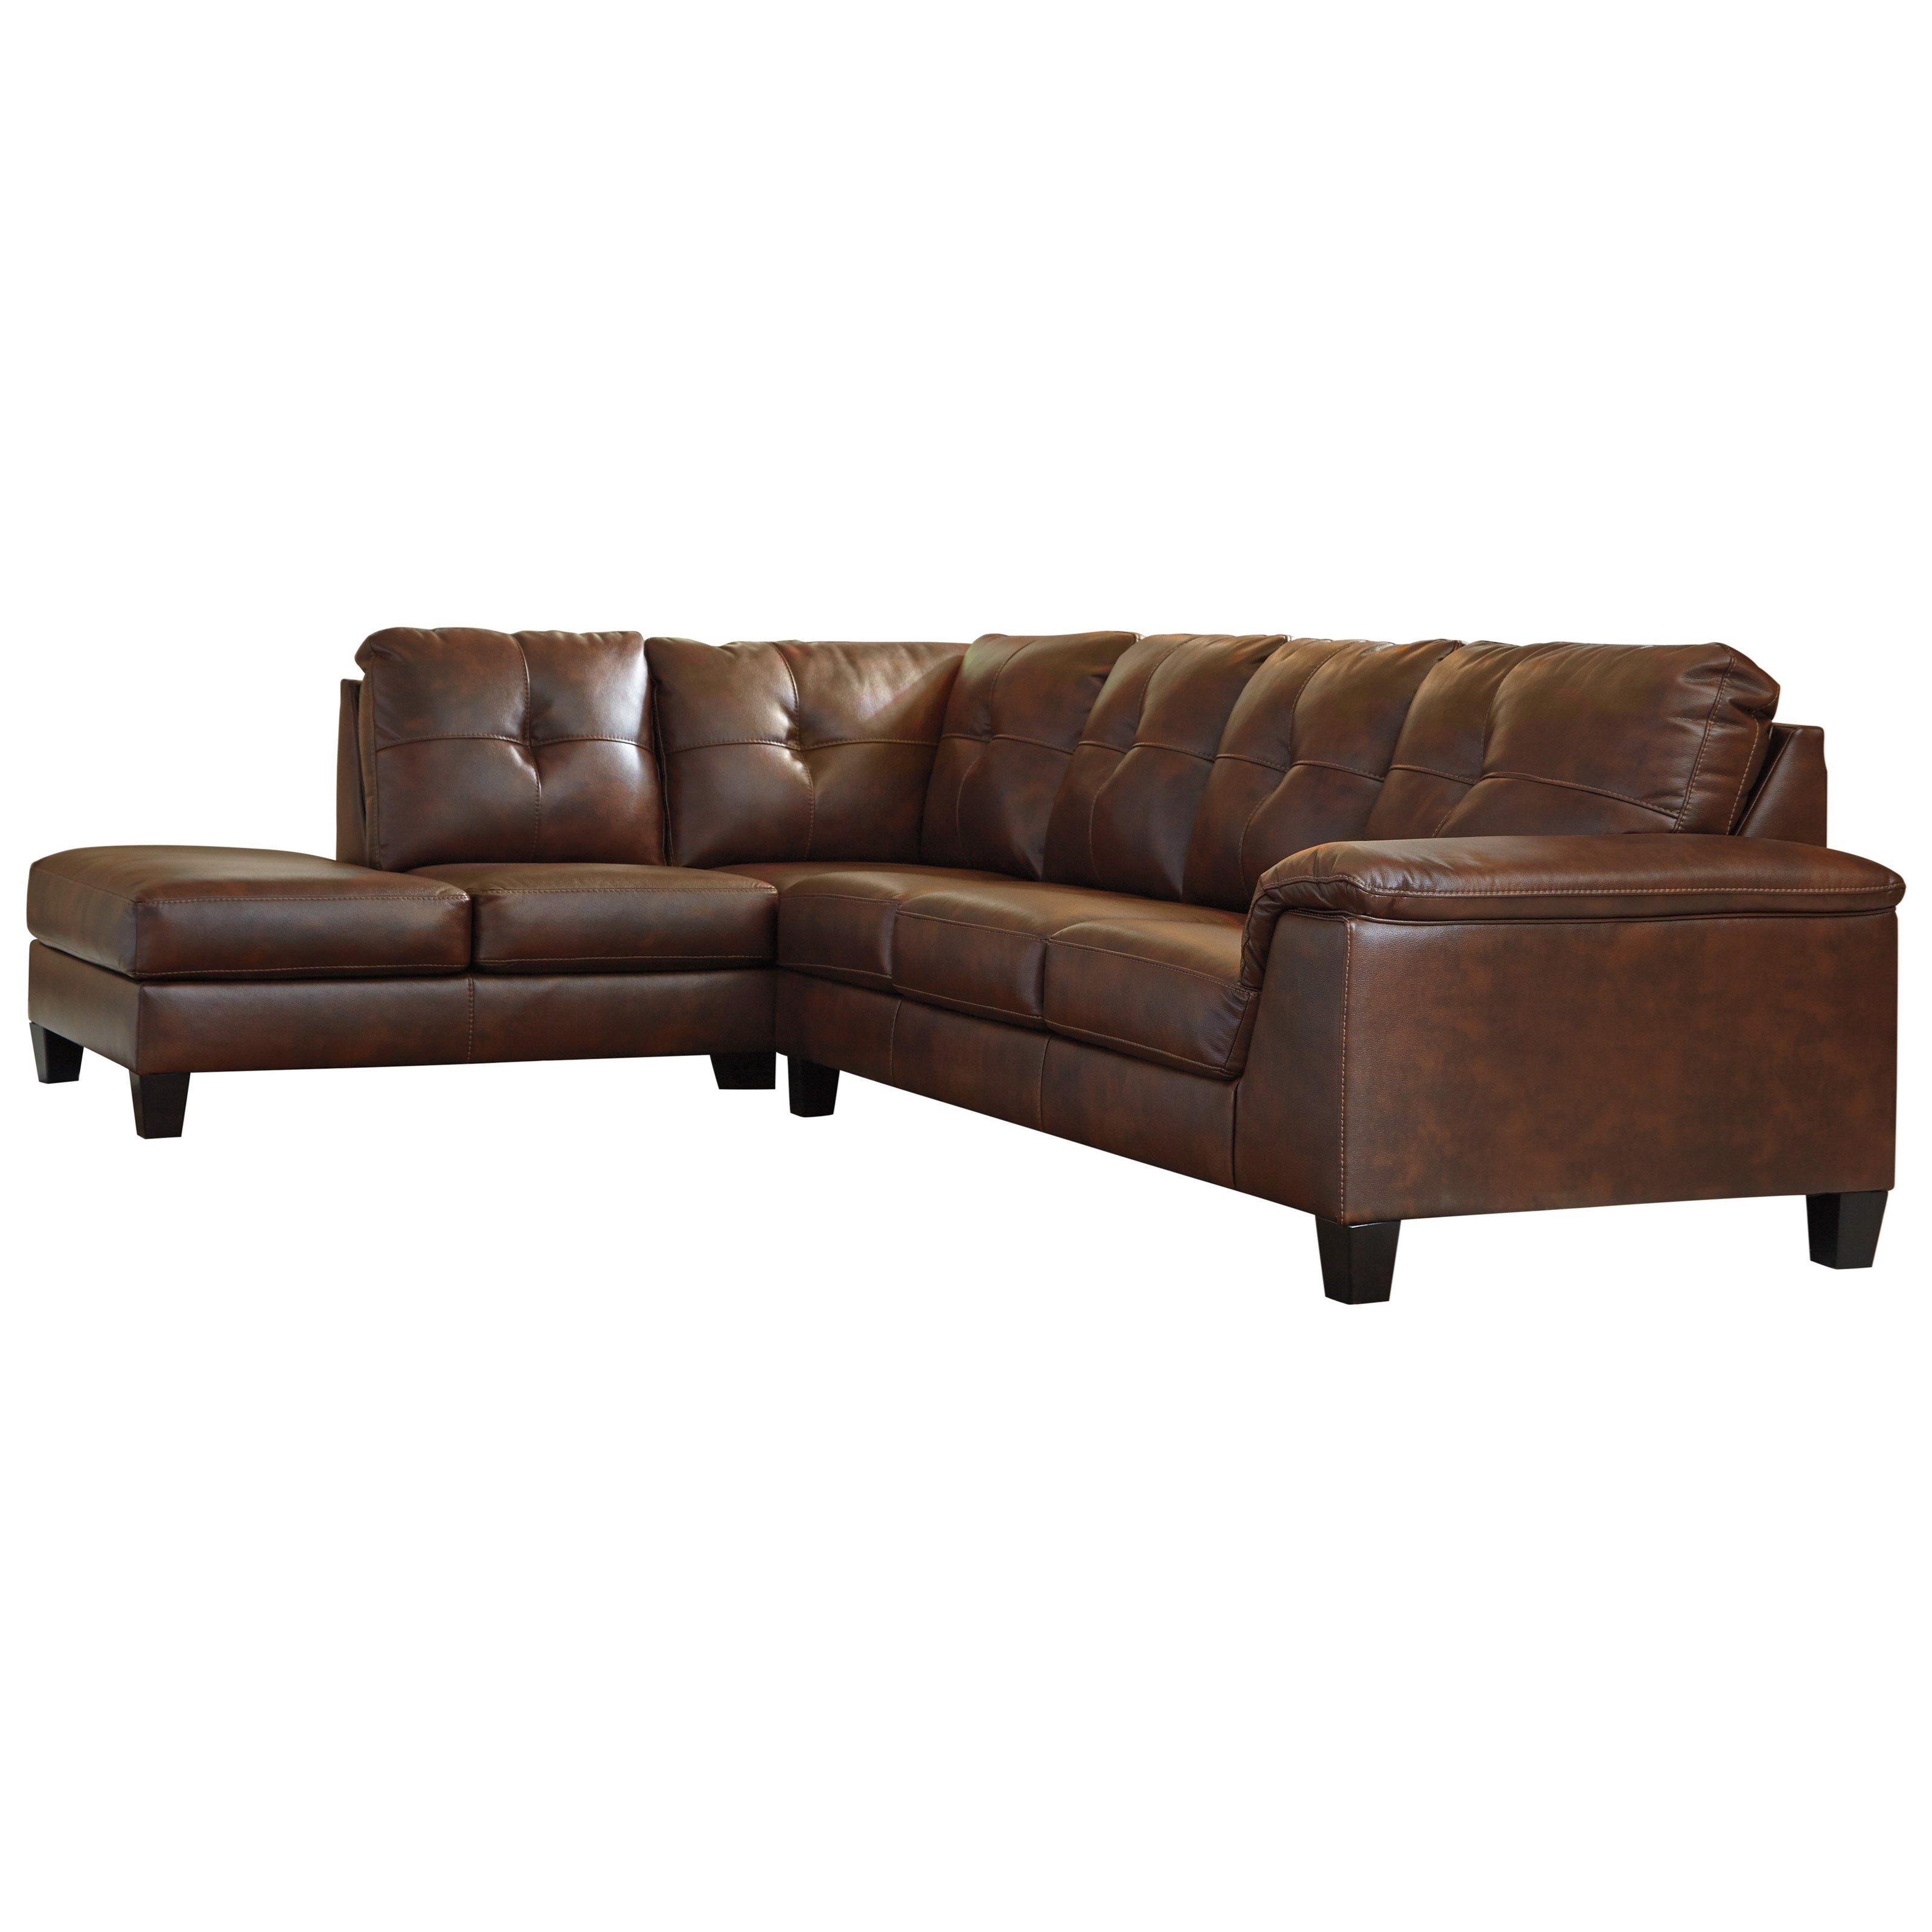 Signature Design by Ashley Goldstone 2 Piece Sectional - Item Number: 3420367+16